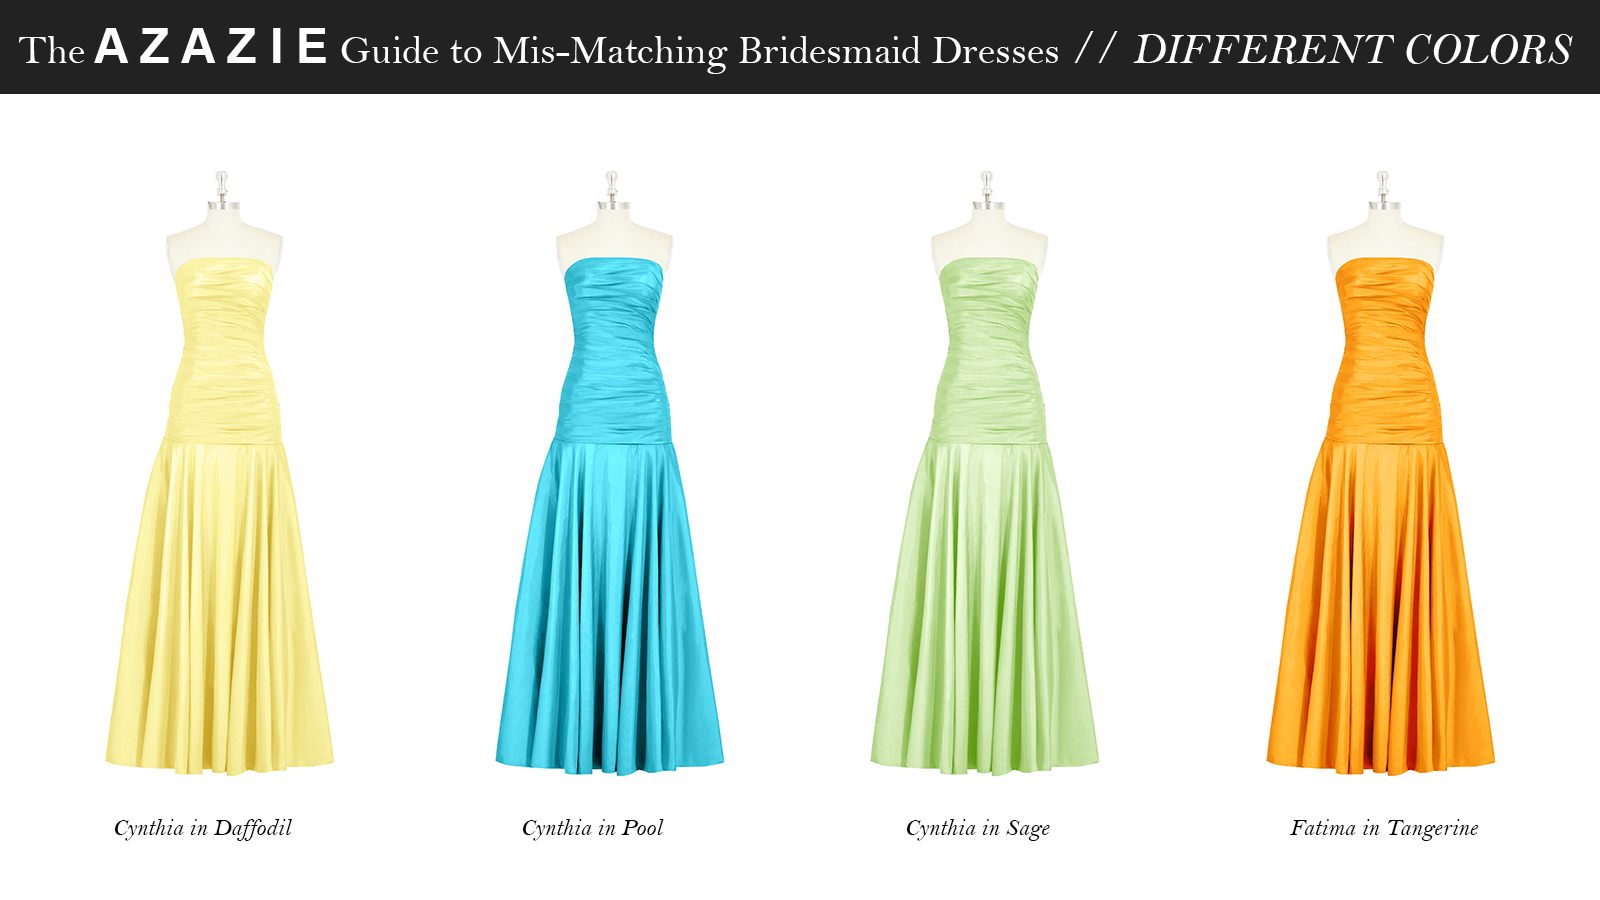 AZAZIE_Guide_MisMatching_Bridesmaid_Dresses_Different_Colors